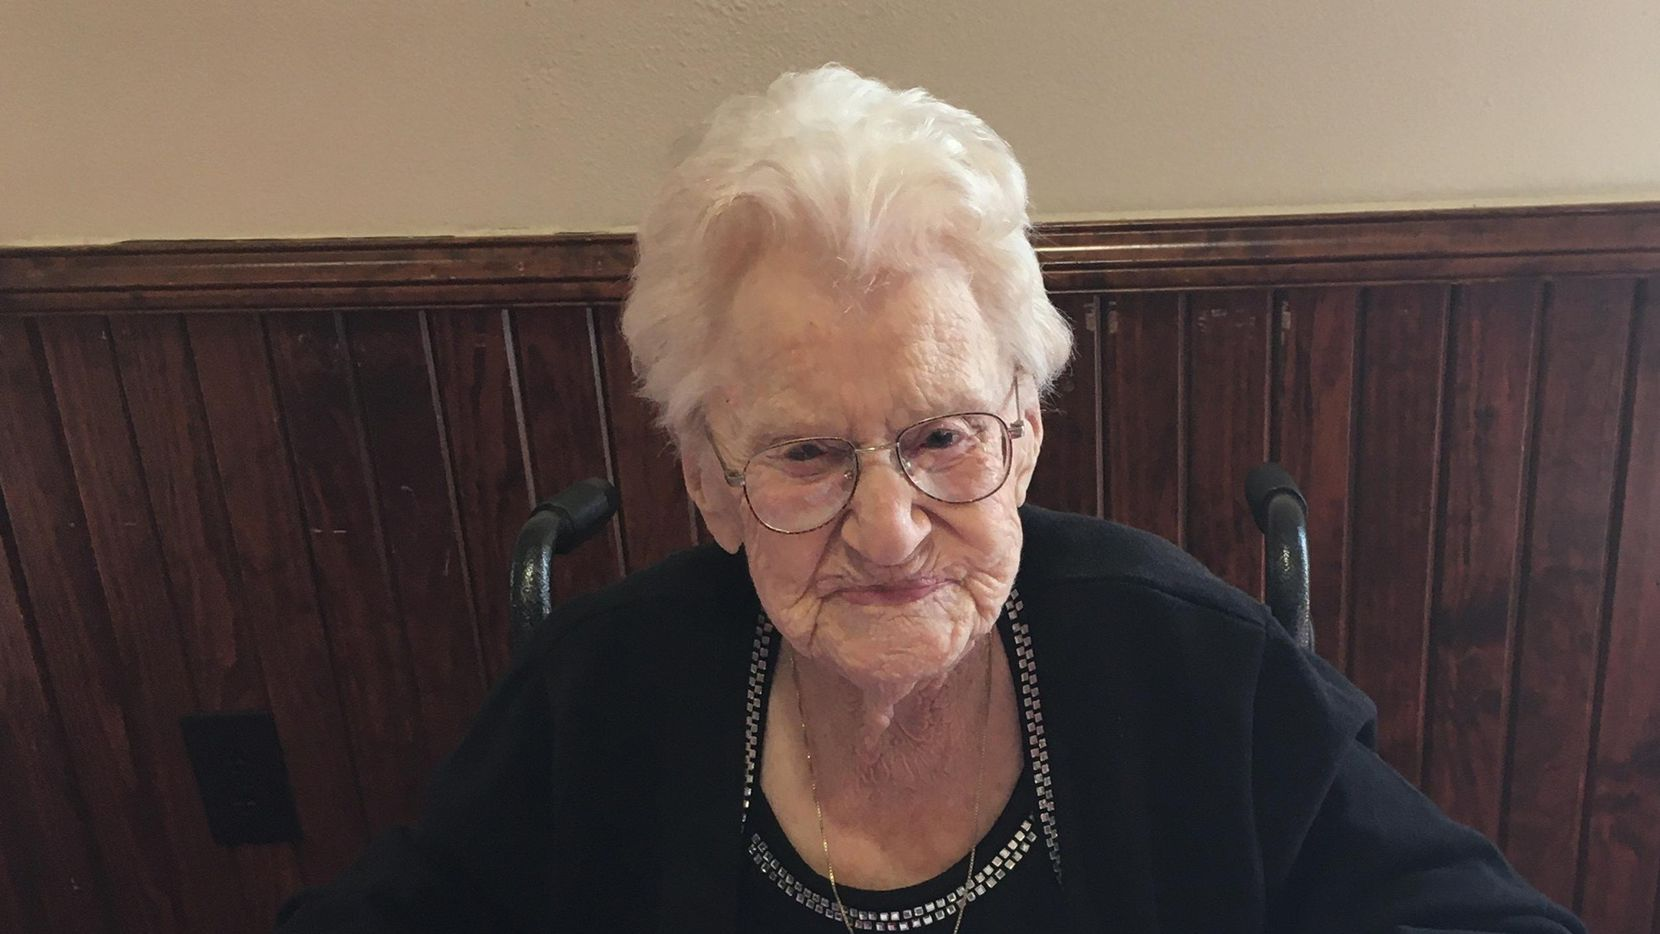 Dorothy Swan has recovered following contracting COVID-19 and two strains of the flu, after a family gathering on Christmas.